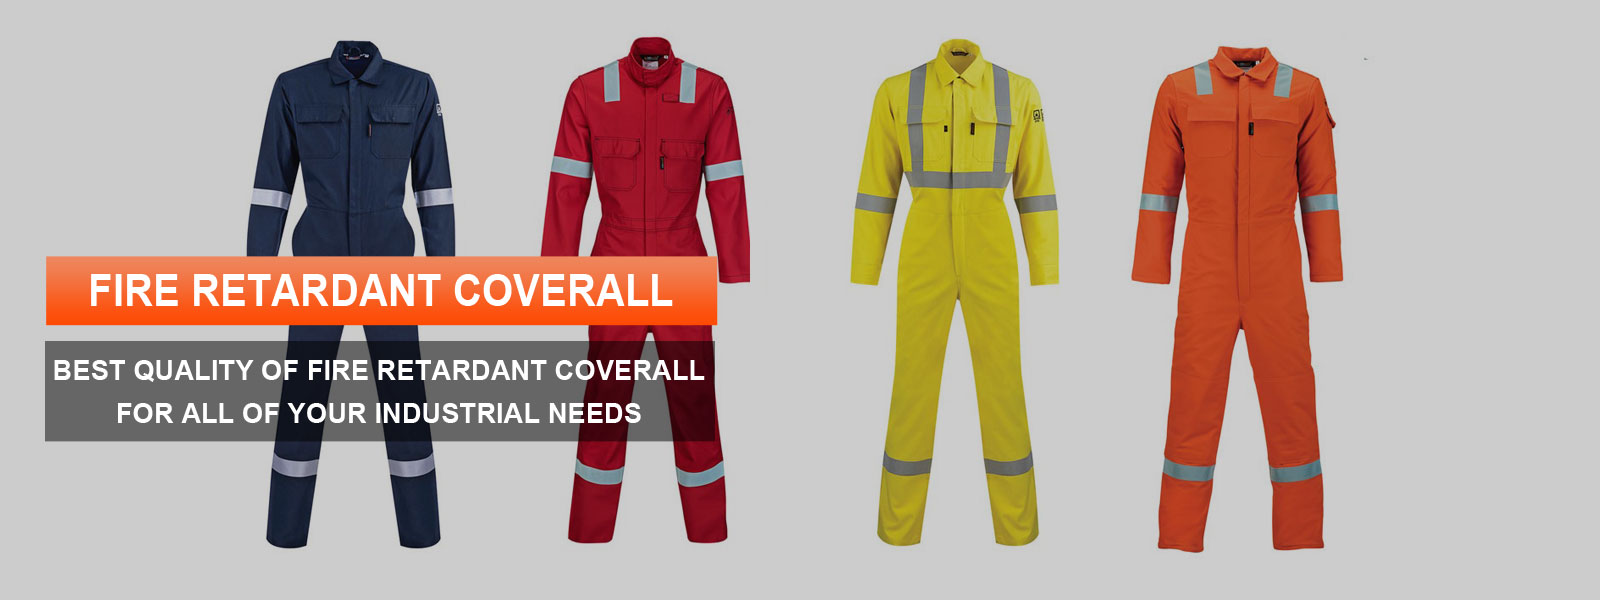 Fire Retardant Coverall Manufacturers in India